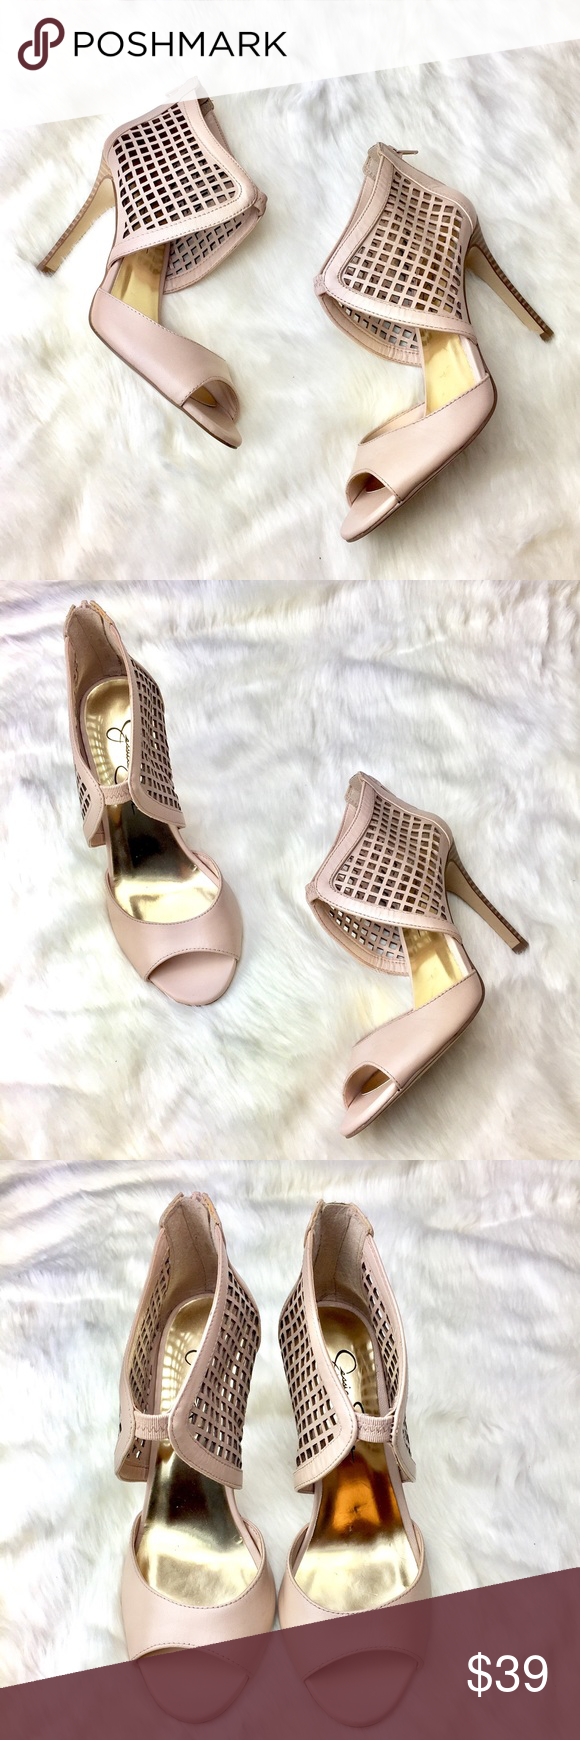 Jessica Simpson Jersee Pump in Blush Gorgeous Jessica Simpson open toe heels with perforated ankle straps, finished in a soft pink leather. Leather upper, manmade lining and sole. Barely worn. Excellent condition. Jessica Simpson Shoes Heels